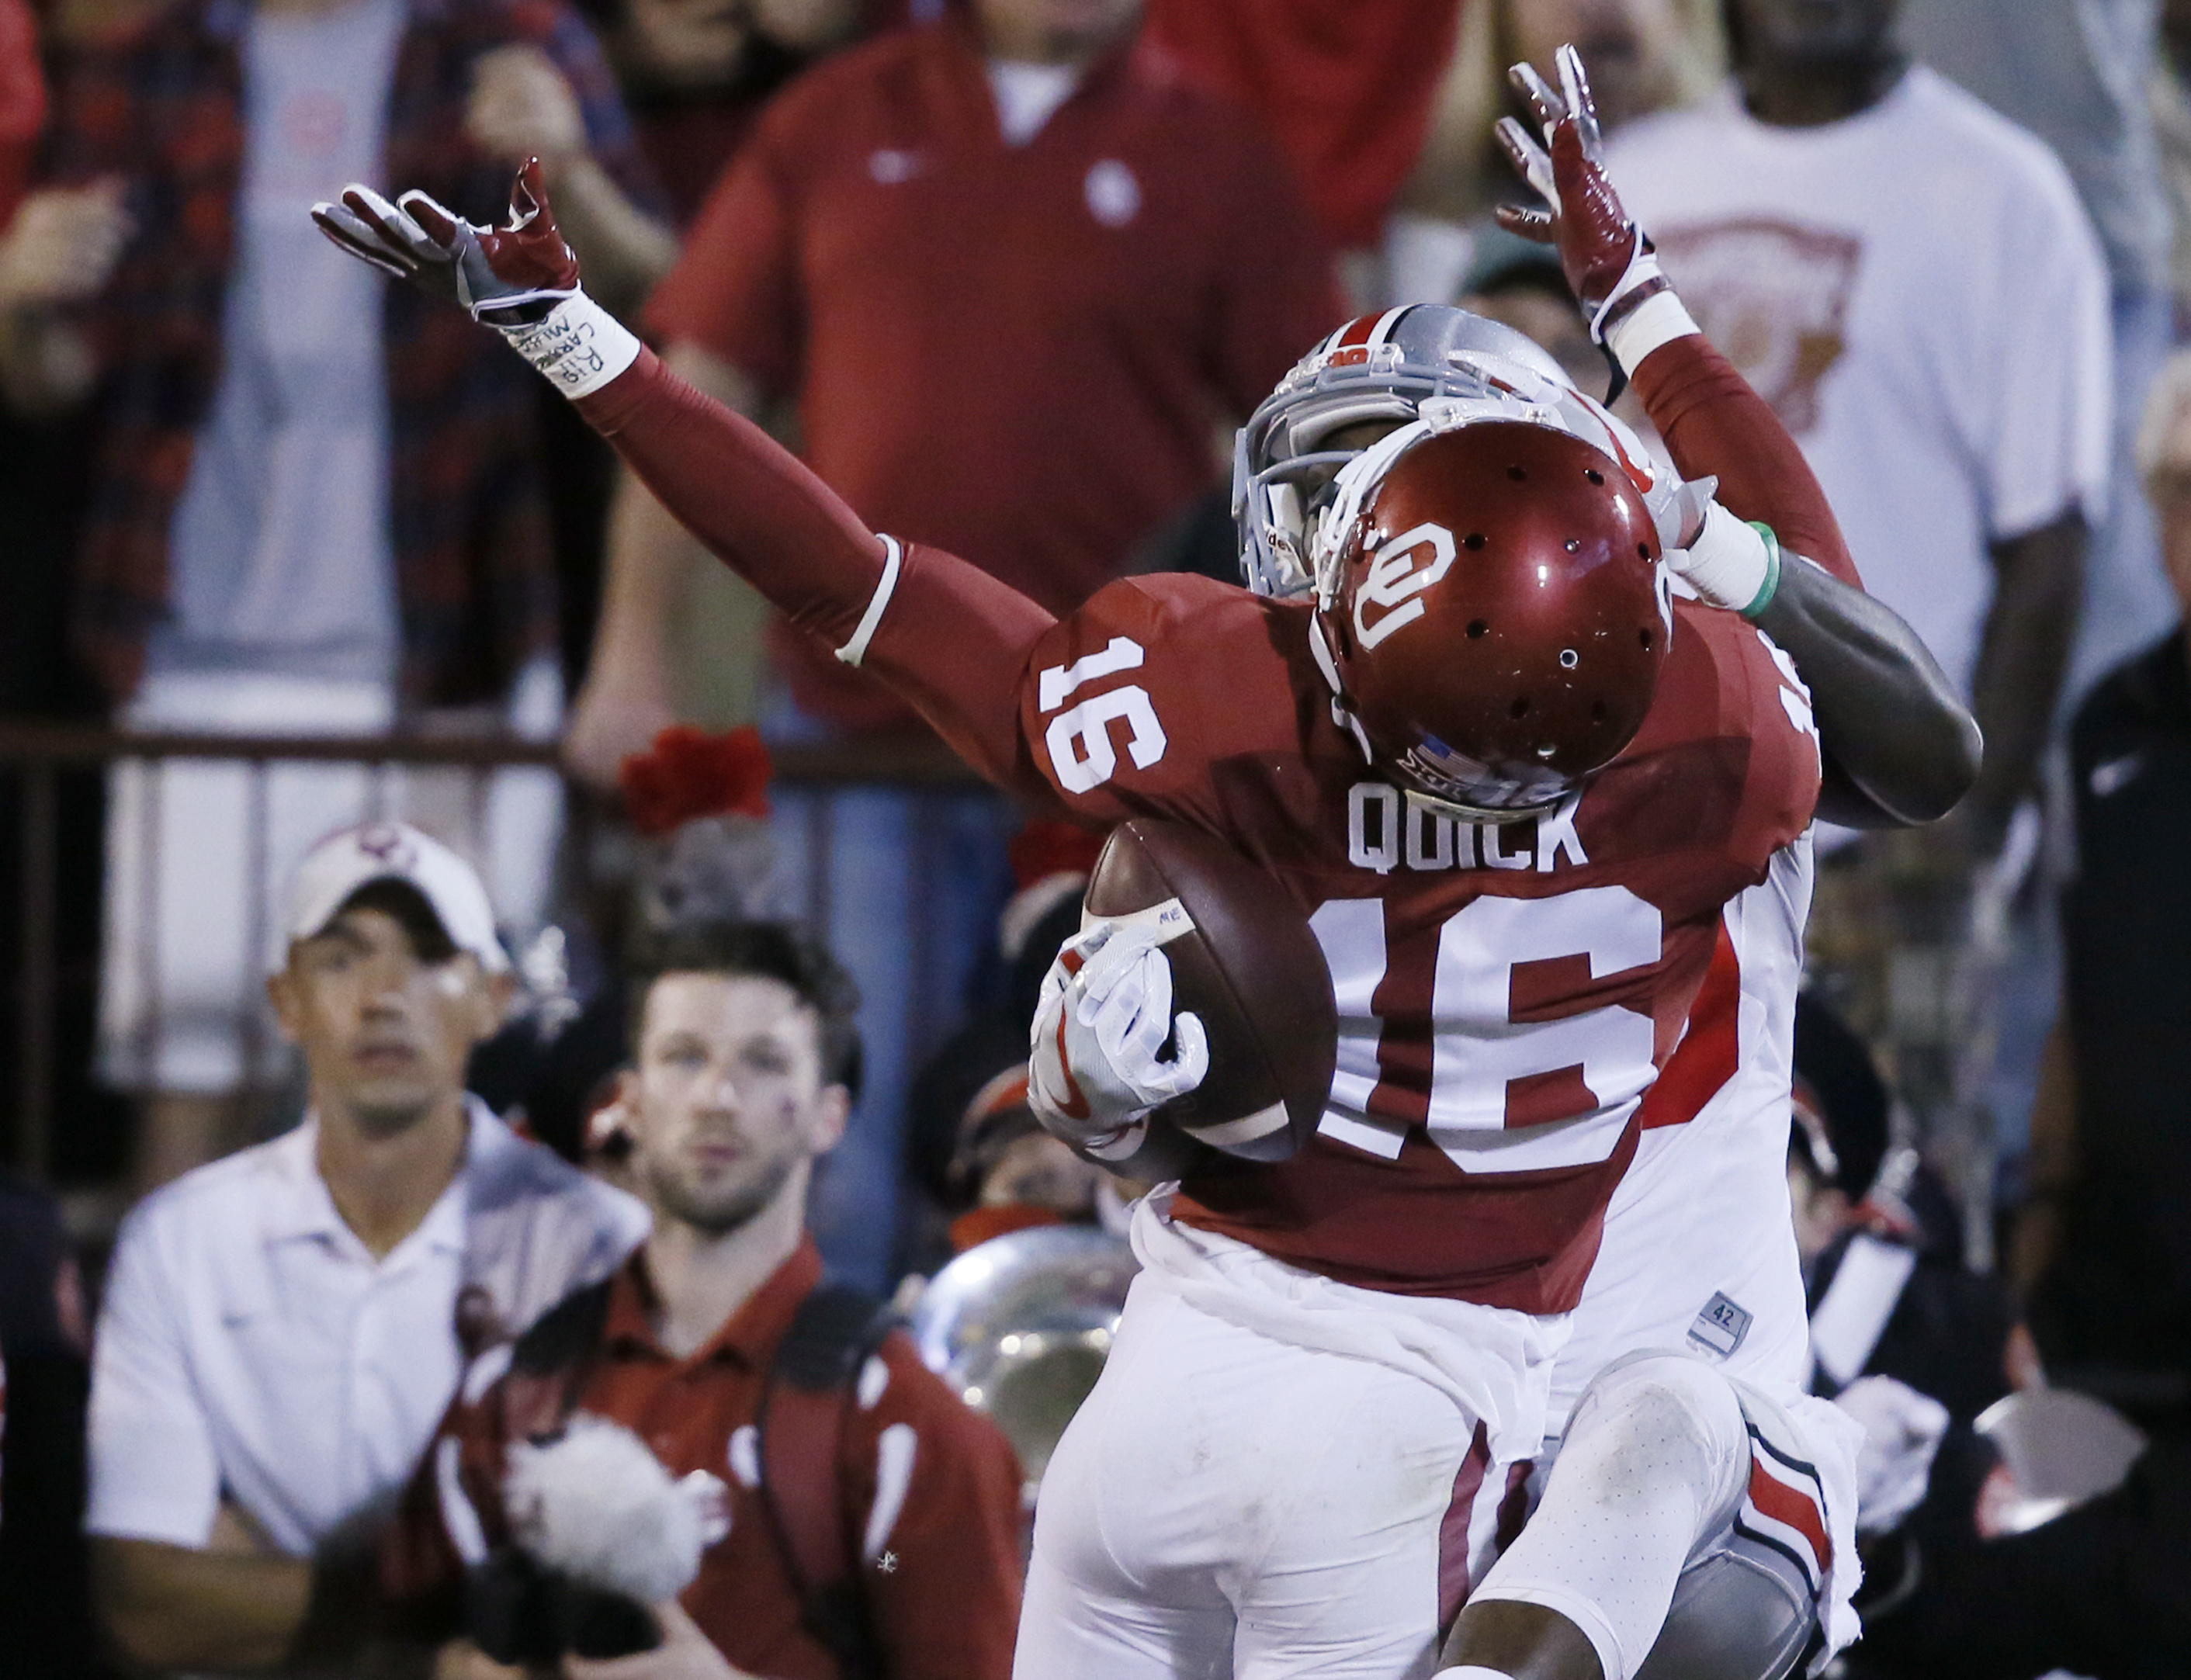 FILE - In this Sept. 17, 2016, file photo, Ohio State wide receiver Noah Brown, rear, grabs a pass for a touchdown on the back of Oklahoma defender Michiah Quick (16) during the second quarter of an NCAA college football game in Norman, Okla. The Ohio Sta